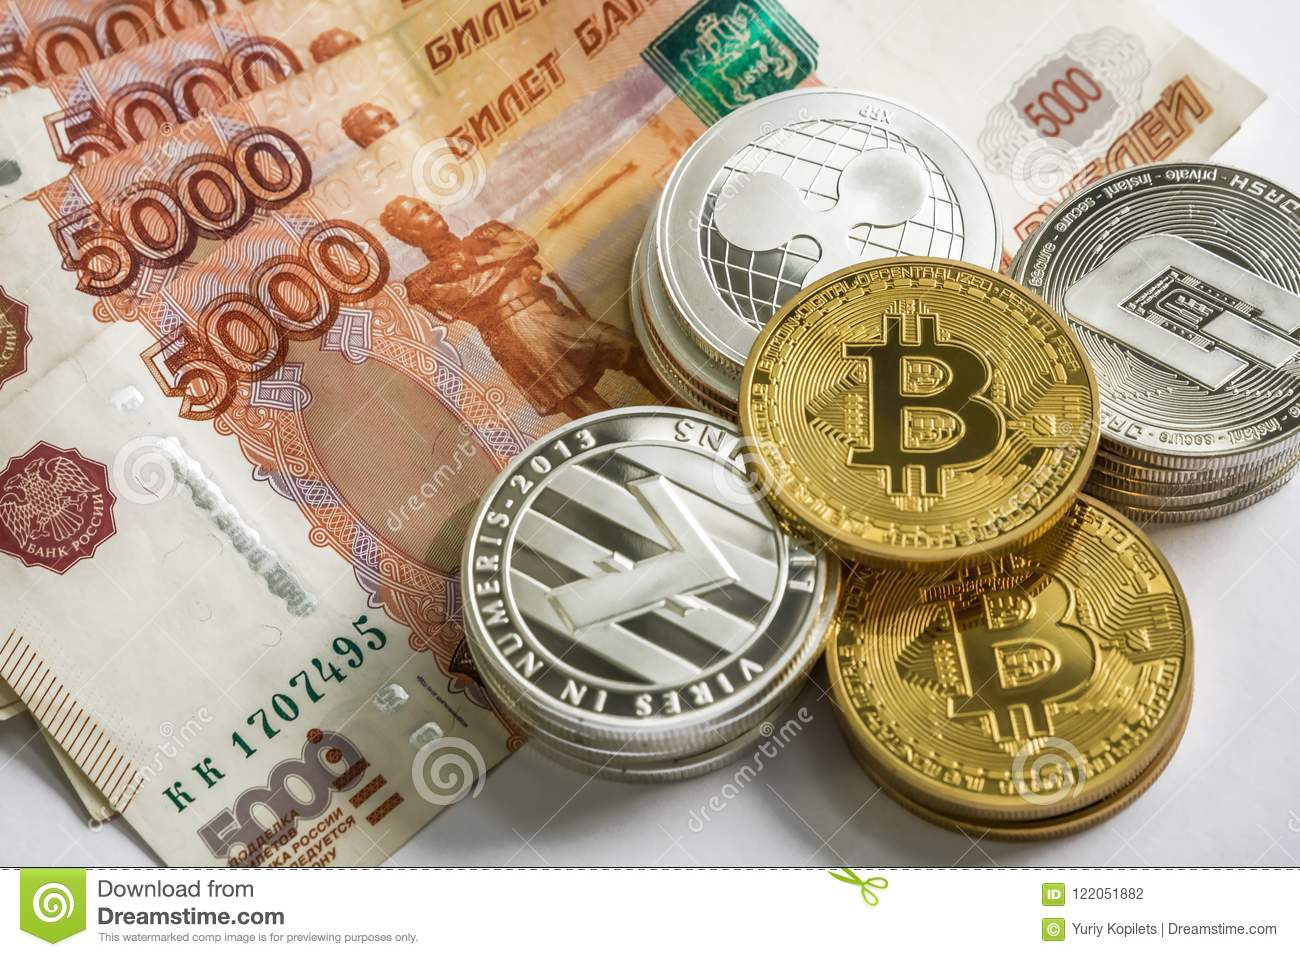 How to exchange Bitcoin for rubles 91